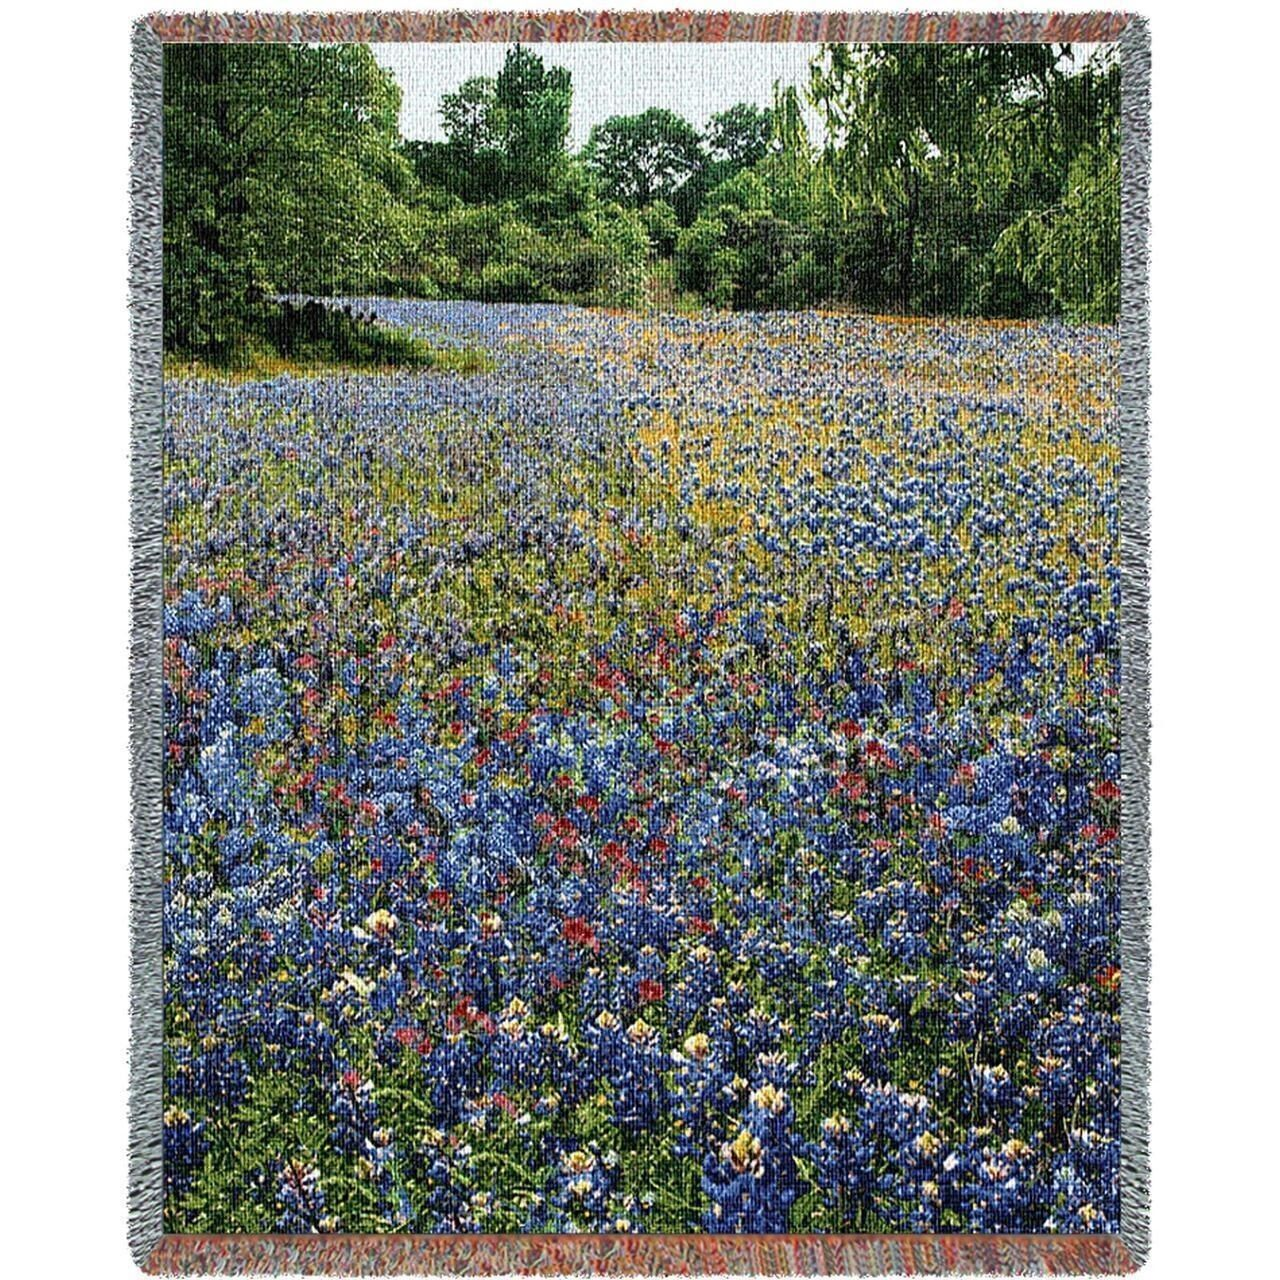 Field of blubonnet Flowers Woven Art Tapestry Tapestry Tapestry Throw 1626-T Made in USA d120a5